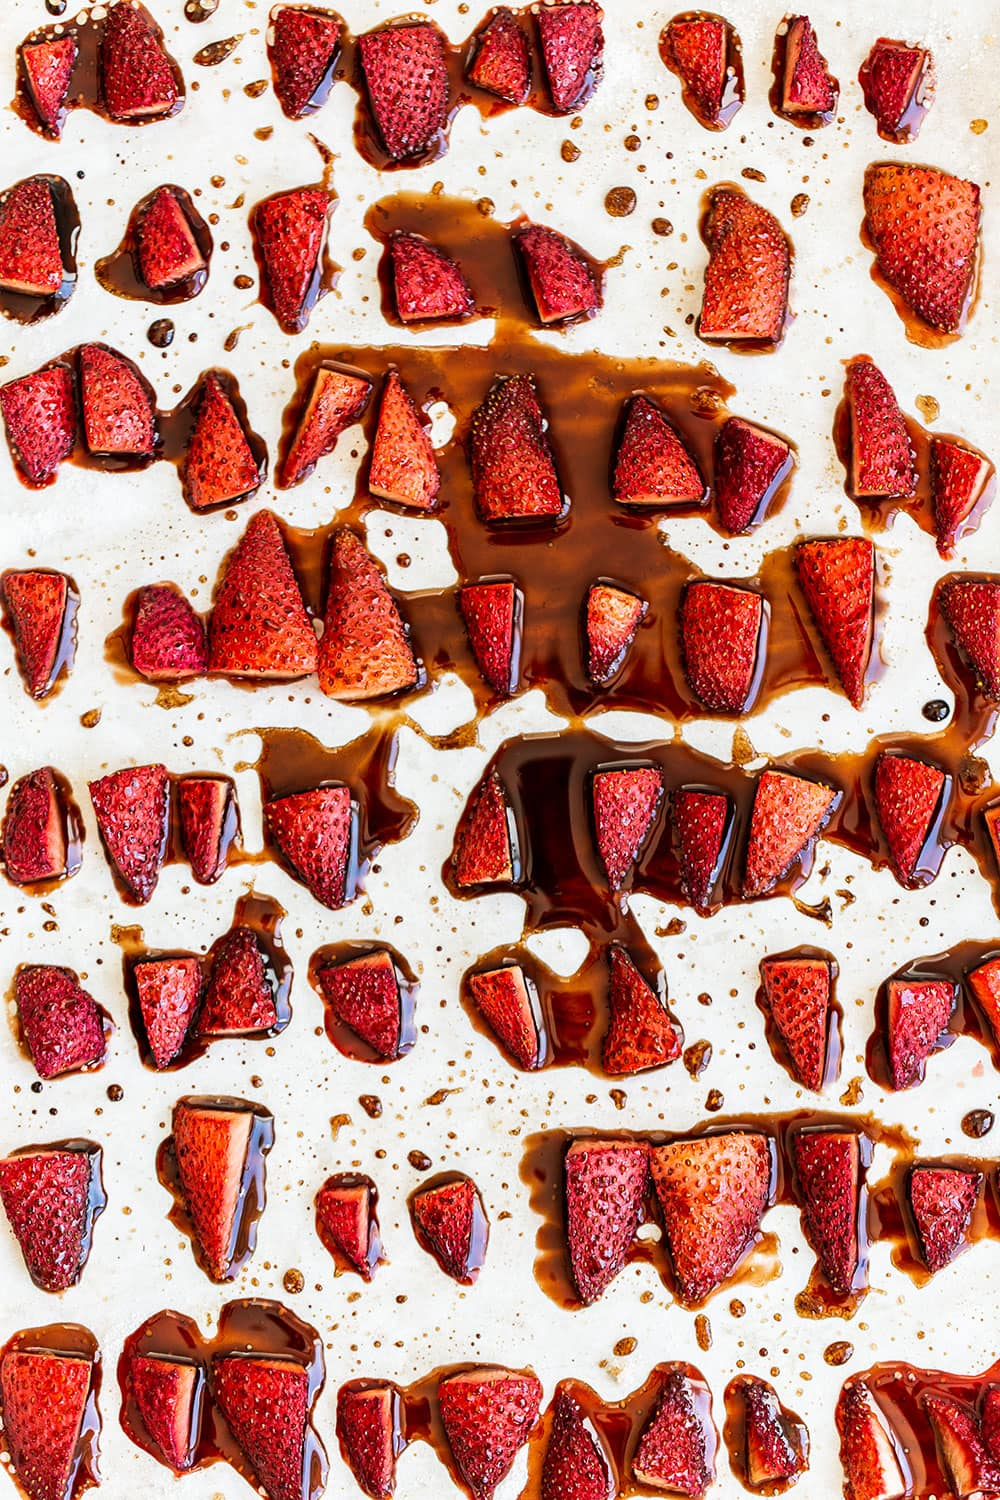 Roasted strawberries on a baking dish